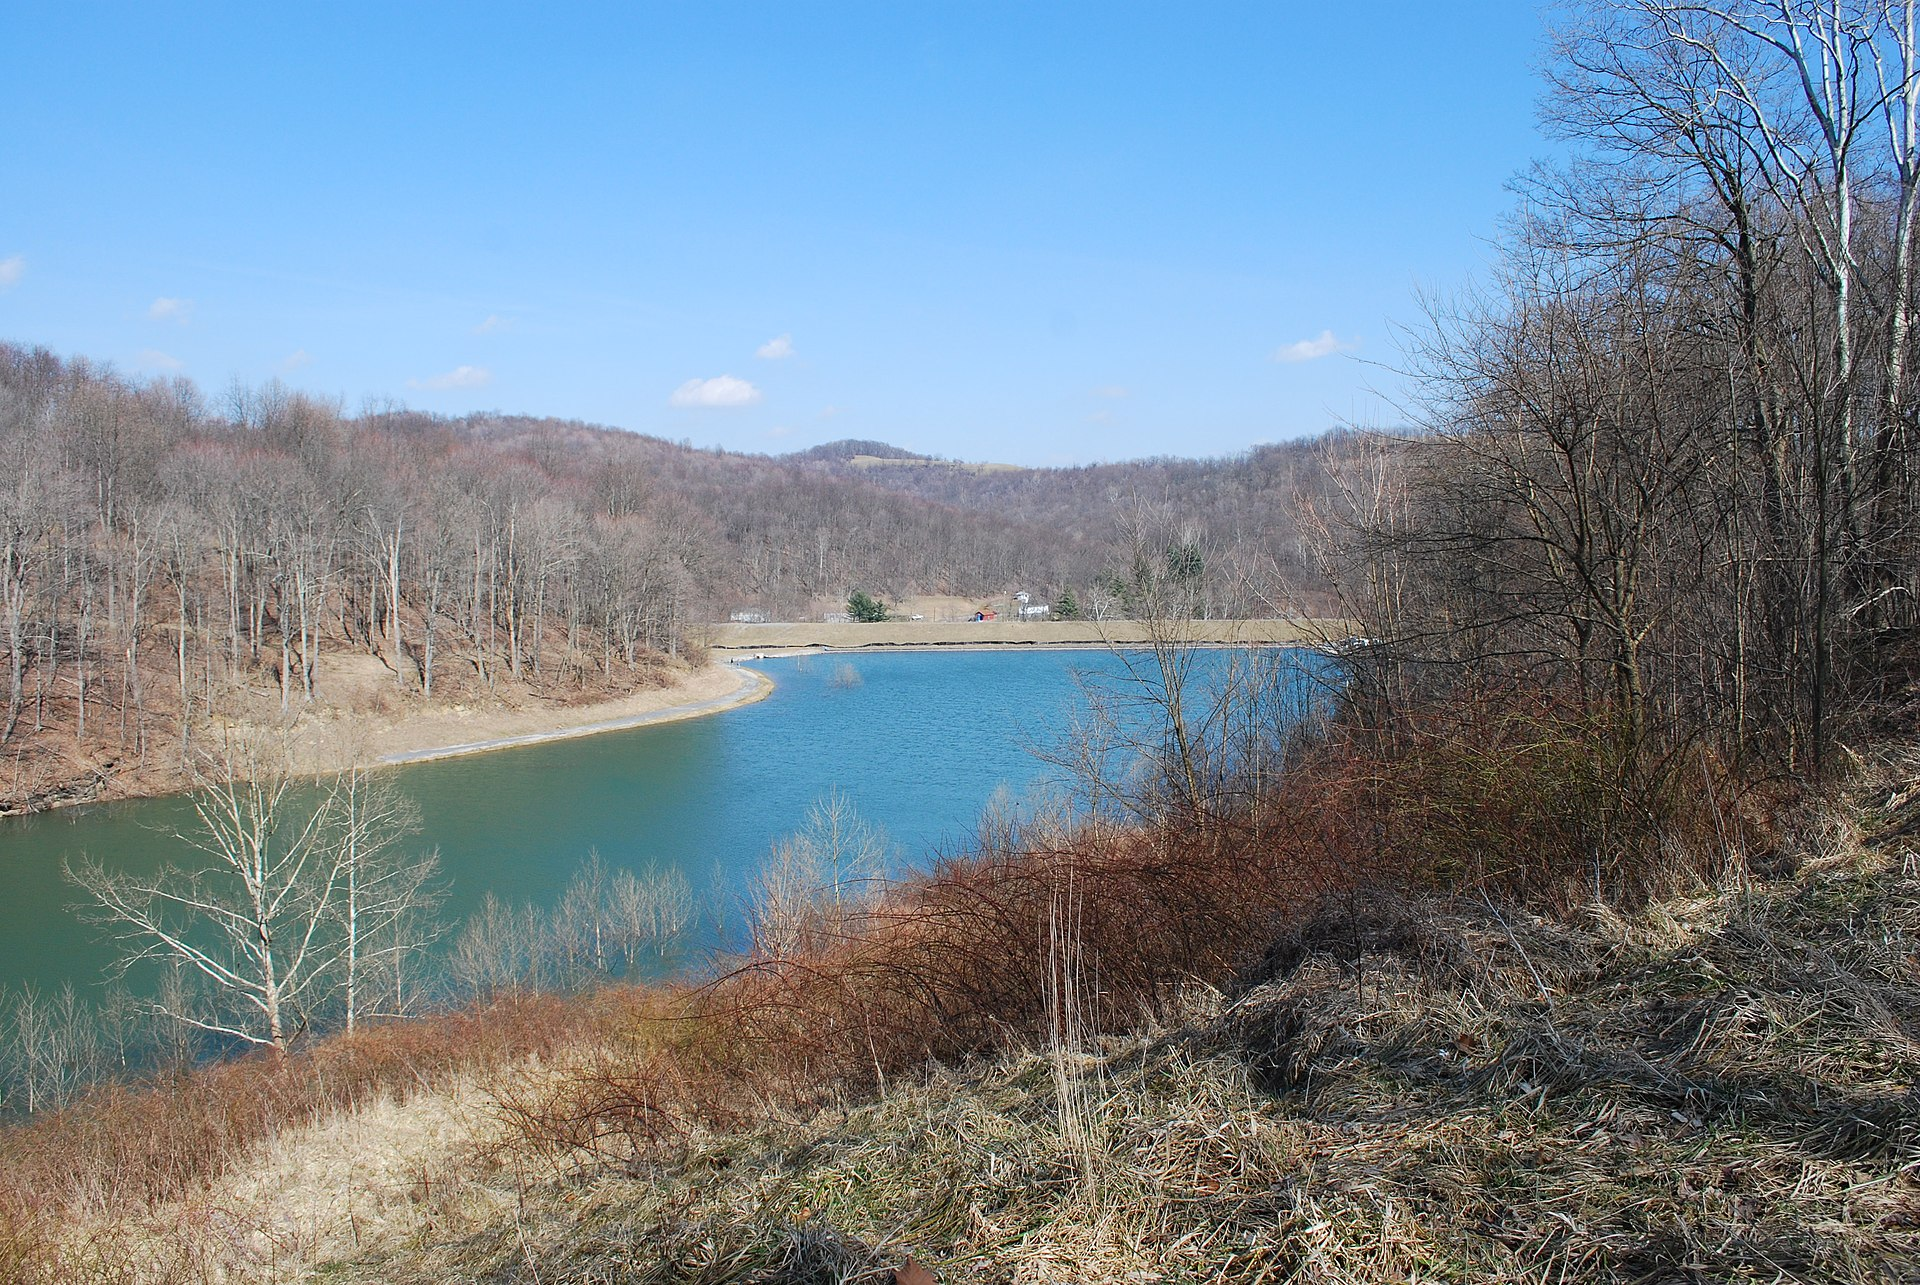 West virginia division of natural resources wikipedia for Wv fishing regulations